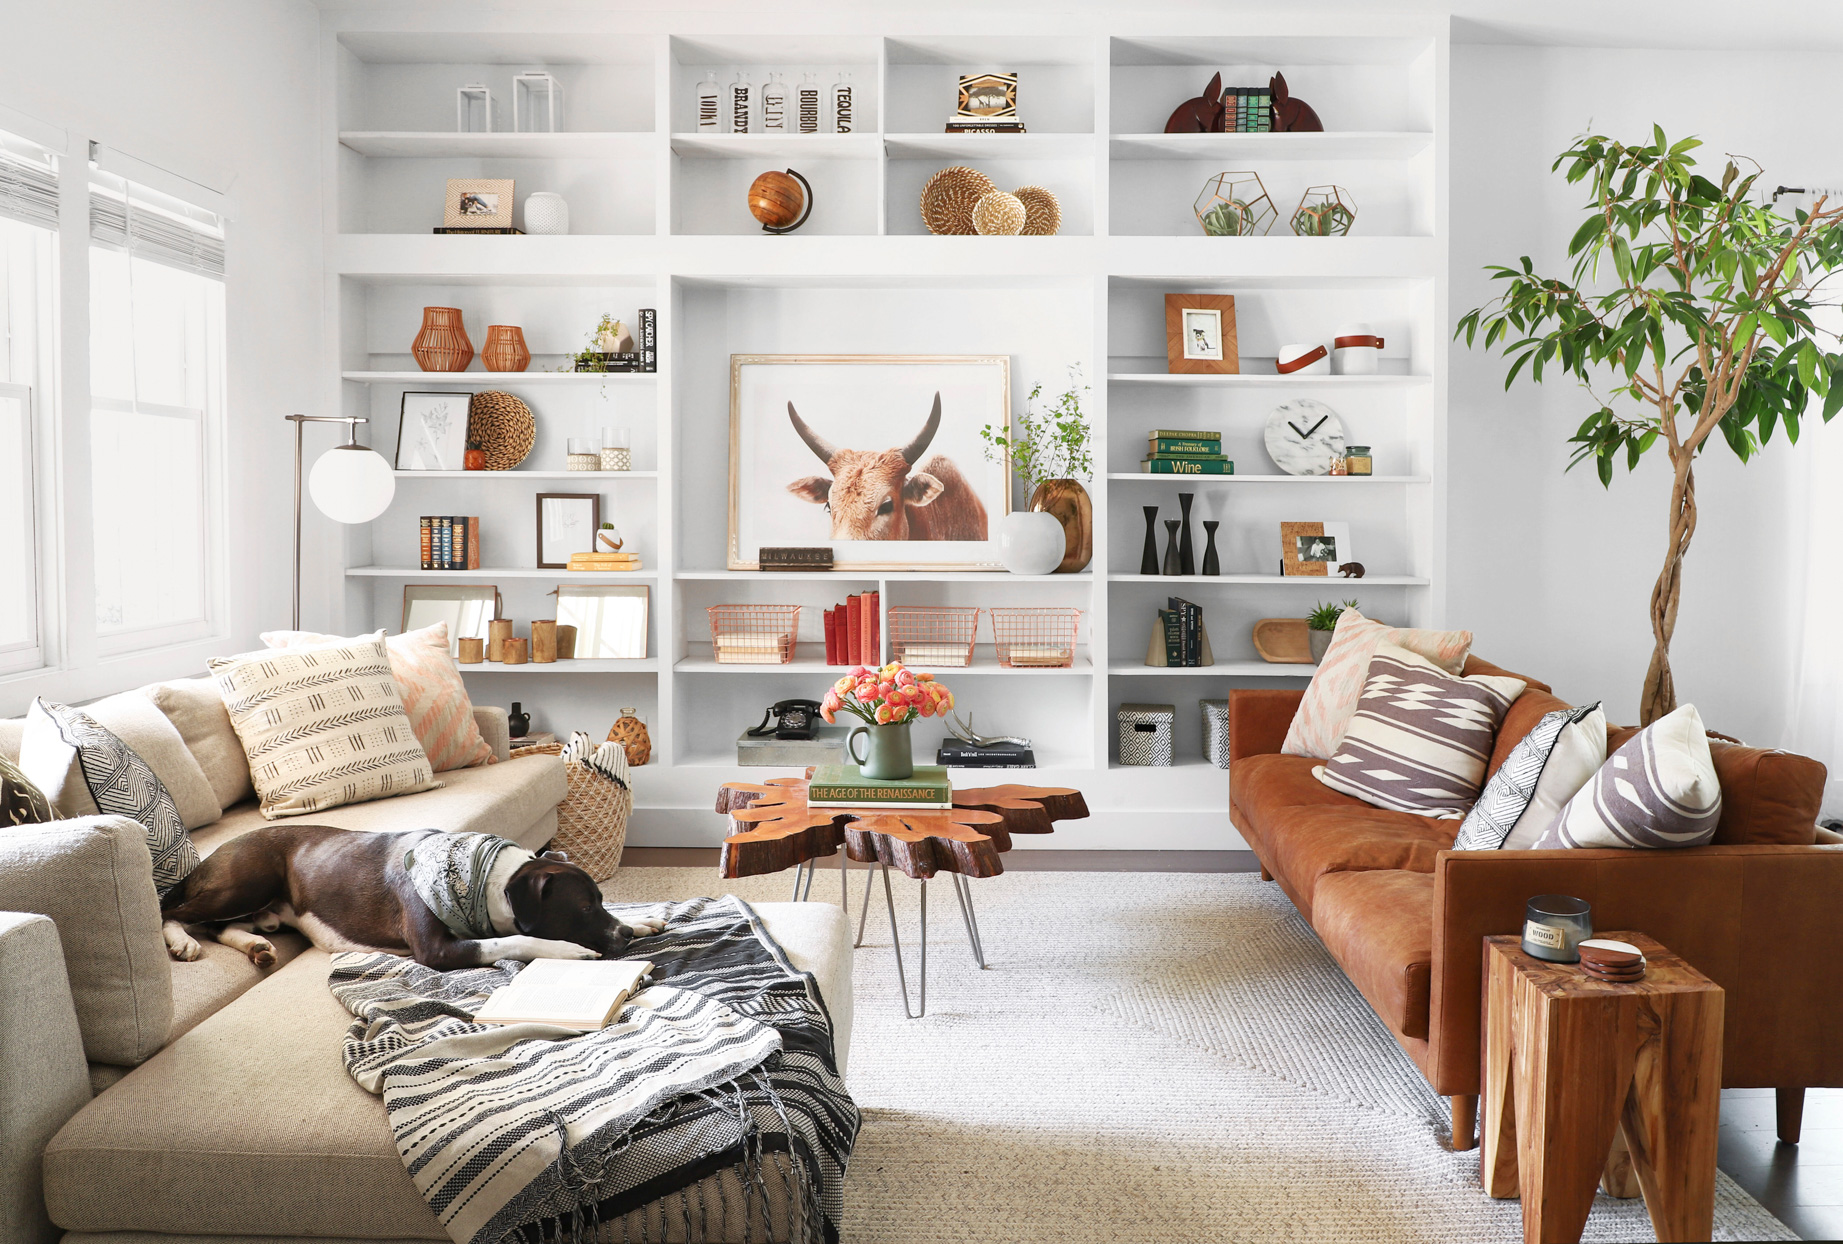 living room with two couches and display shelves